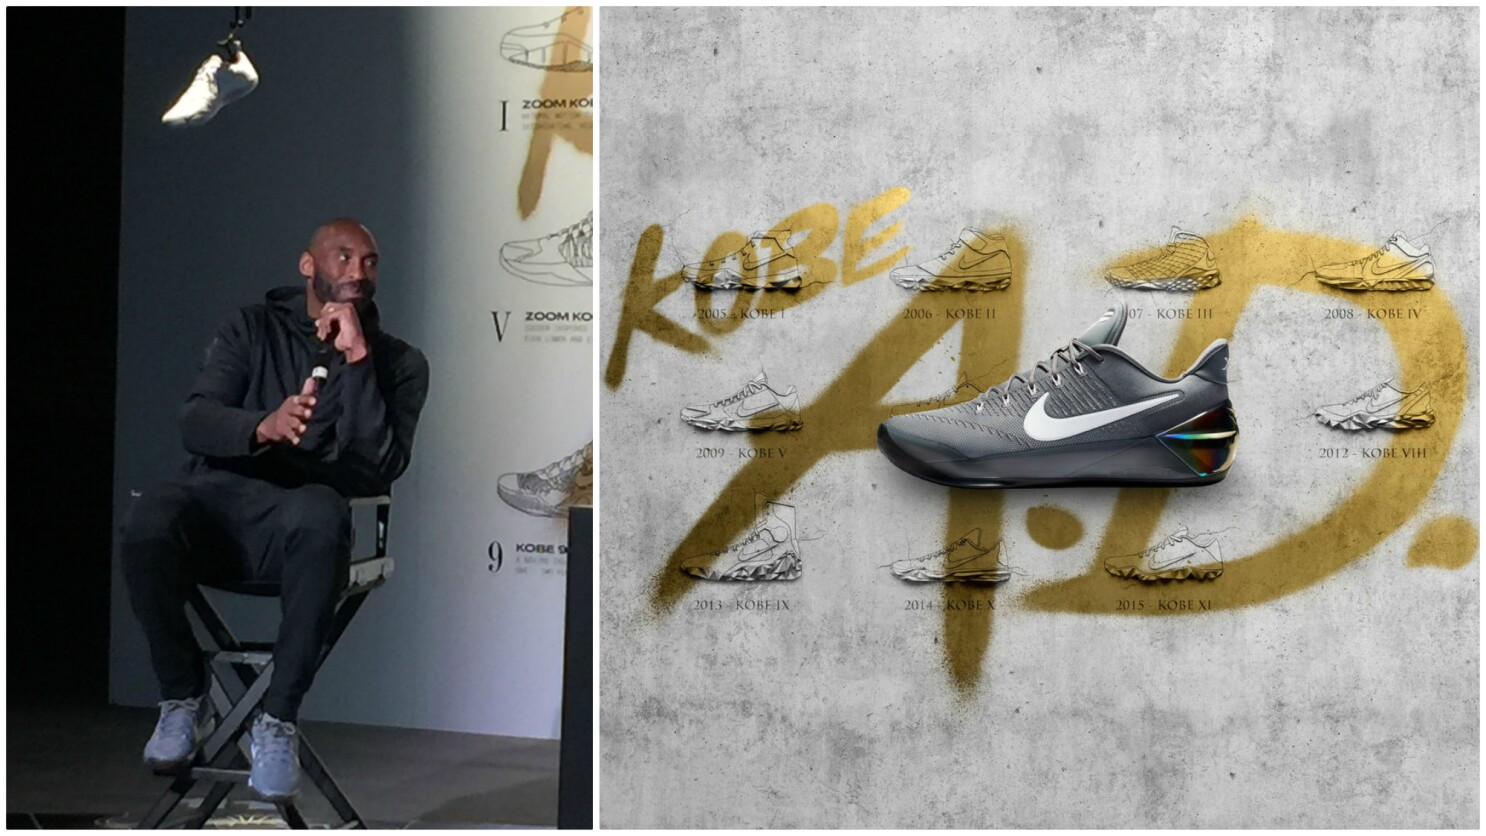 menor Construir sobre diferente a  From Adidas to Nike, Kobe Bryant changed the sneaker world - Los Angeles  Times